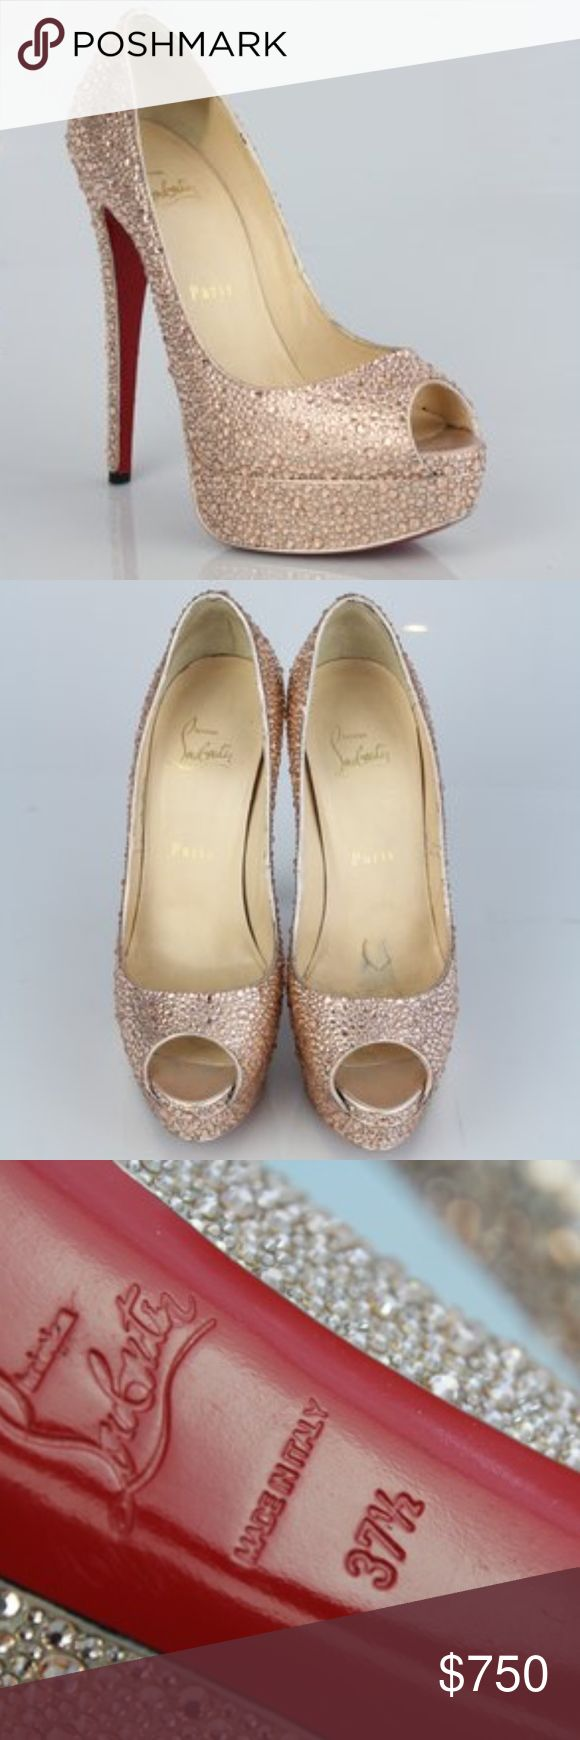 Christian Louboutin Lady Peep Swarovski Pumps Christian Louboutin Lady Peep Toe Swarovski Crystal Rose Gold Pumps.   One of my most favorite & gorgeous heels, I have ever owned; these are stunning (pics don't give justice).  Very good condition, yes there are scuffs on sole; and insoles have some wear, as seen in pics.  Size 37.5 (US size 7.5) Heel Height Appr. 5.75 inches with a 1.5 inch platform; Open Toe; Leather insoles; Dust Bag included! STUNNING ROSE GOLD COLOR Swarovski crystals from…